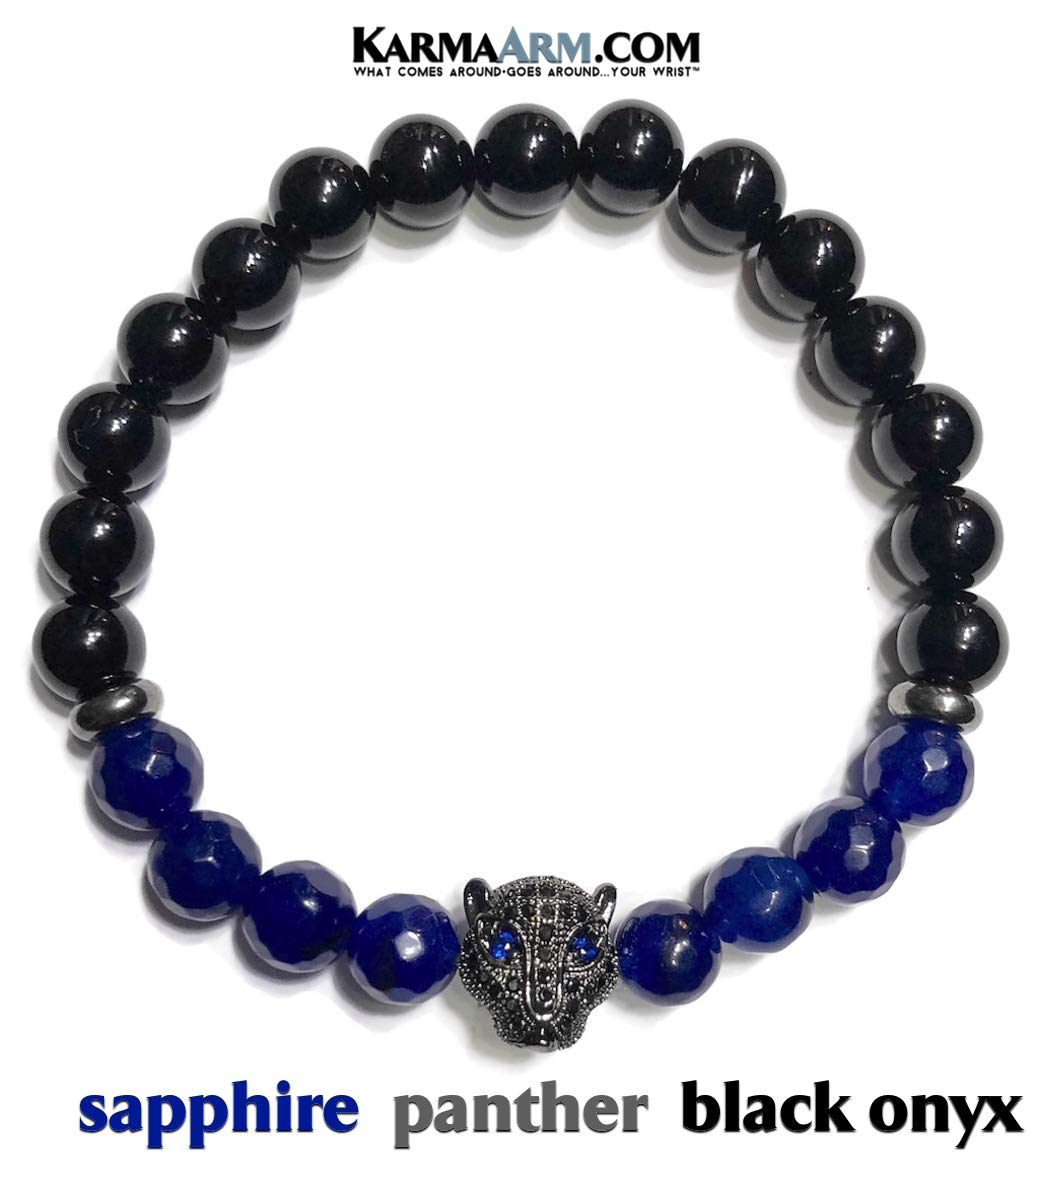 KarmaArm Black Panther Bracelets | Yoga Reiki Healing Boho Beaded Meditation Jewelry | Courage | Sapphire | Black Onyx (7)